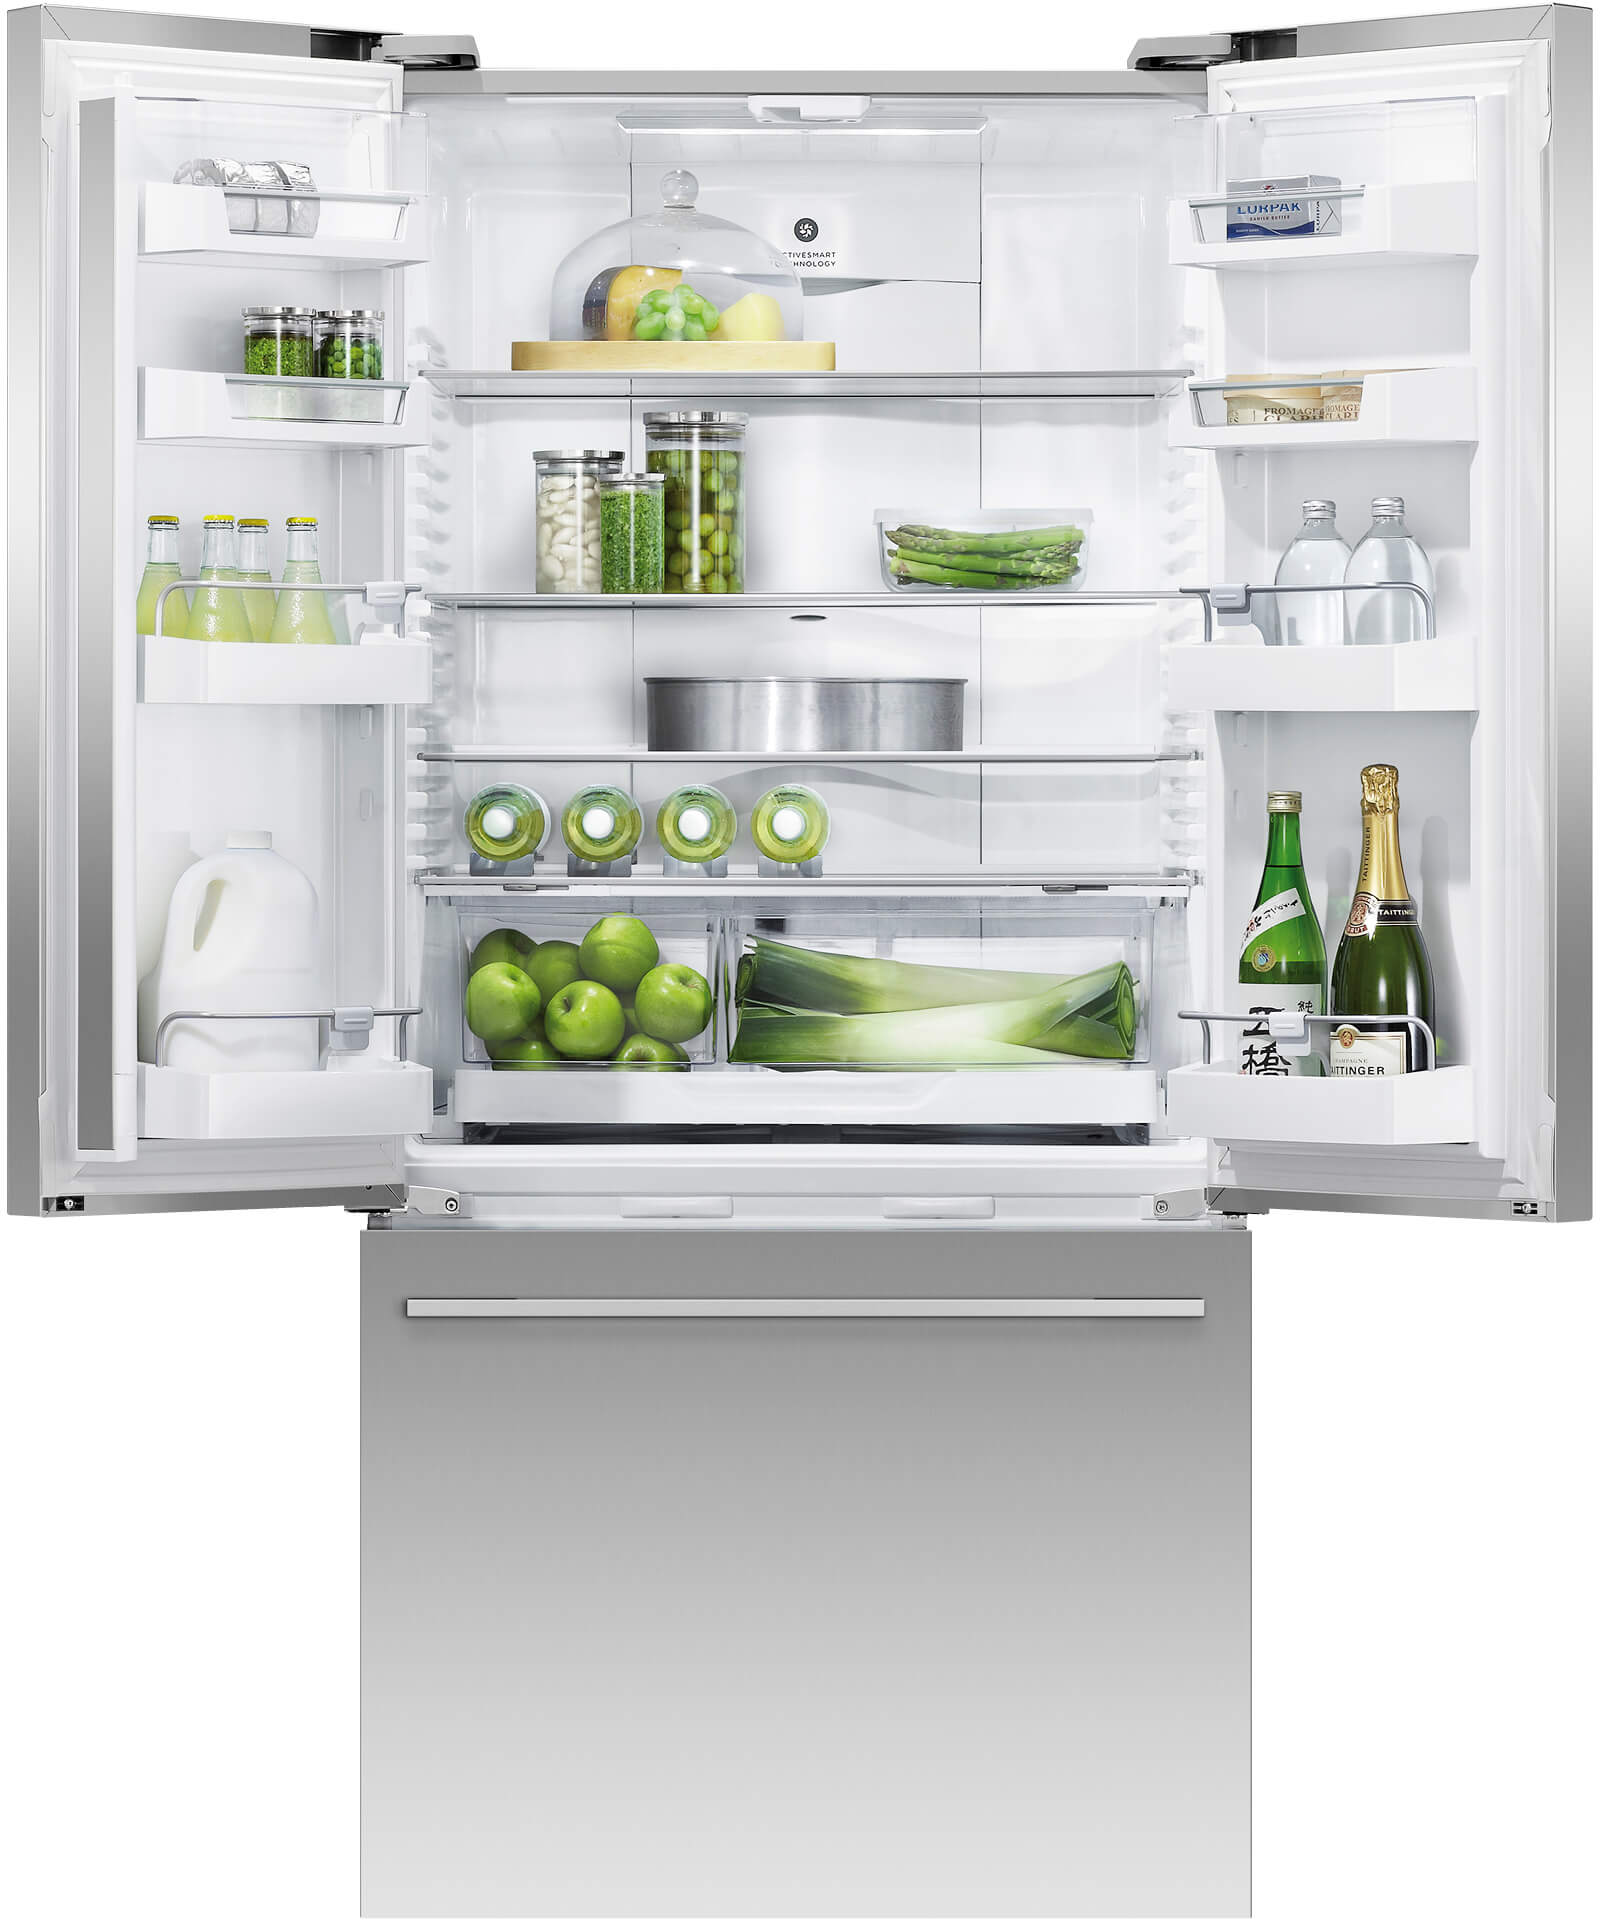 Rf522adx5 Stainless Steel Fridge Freezer Fisher Paykel